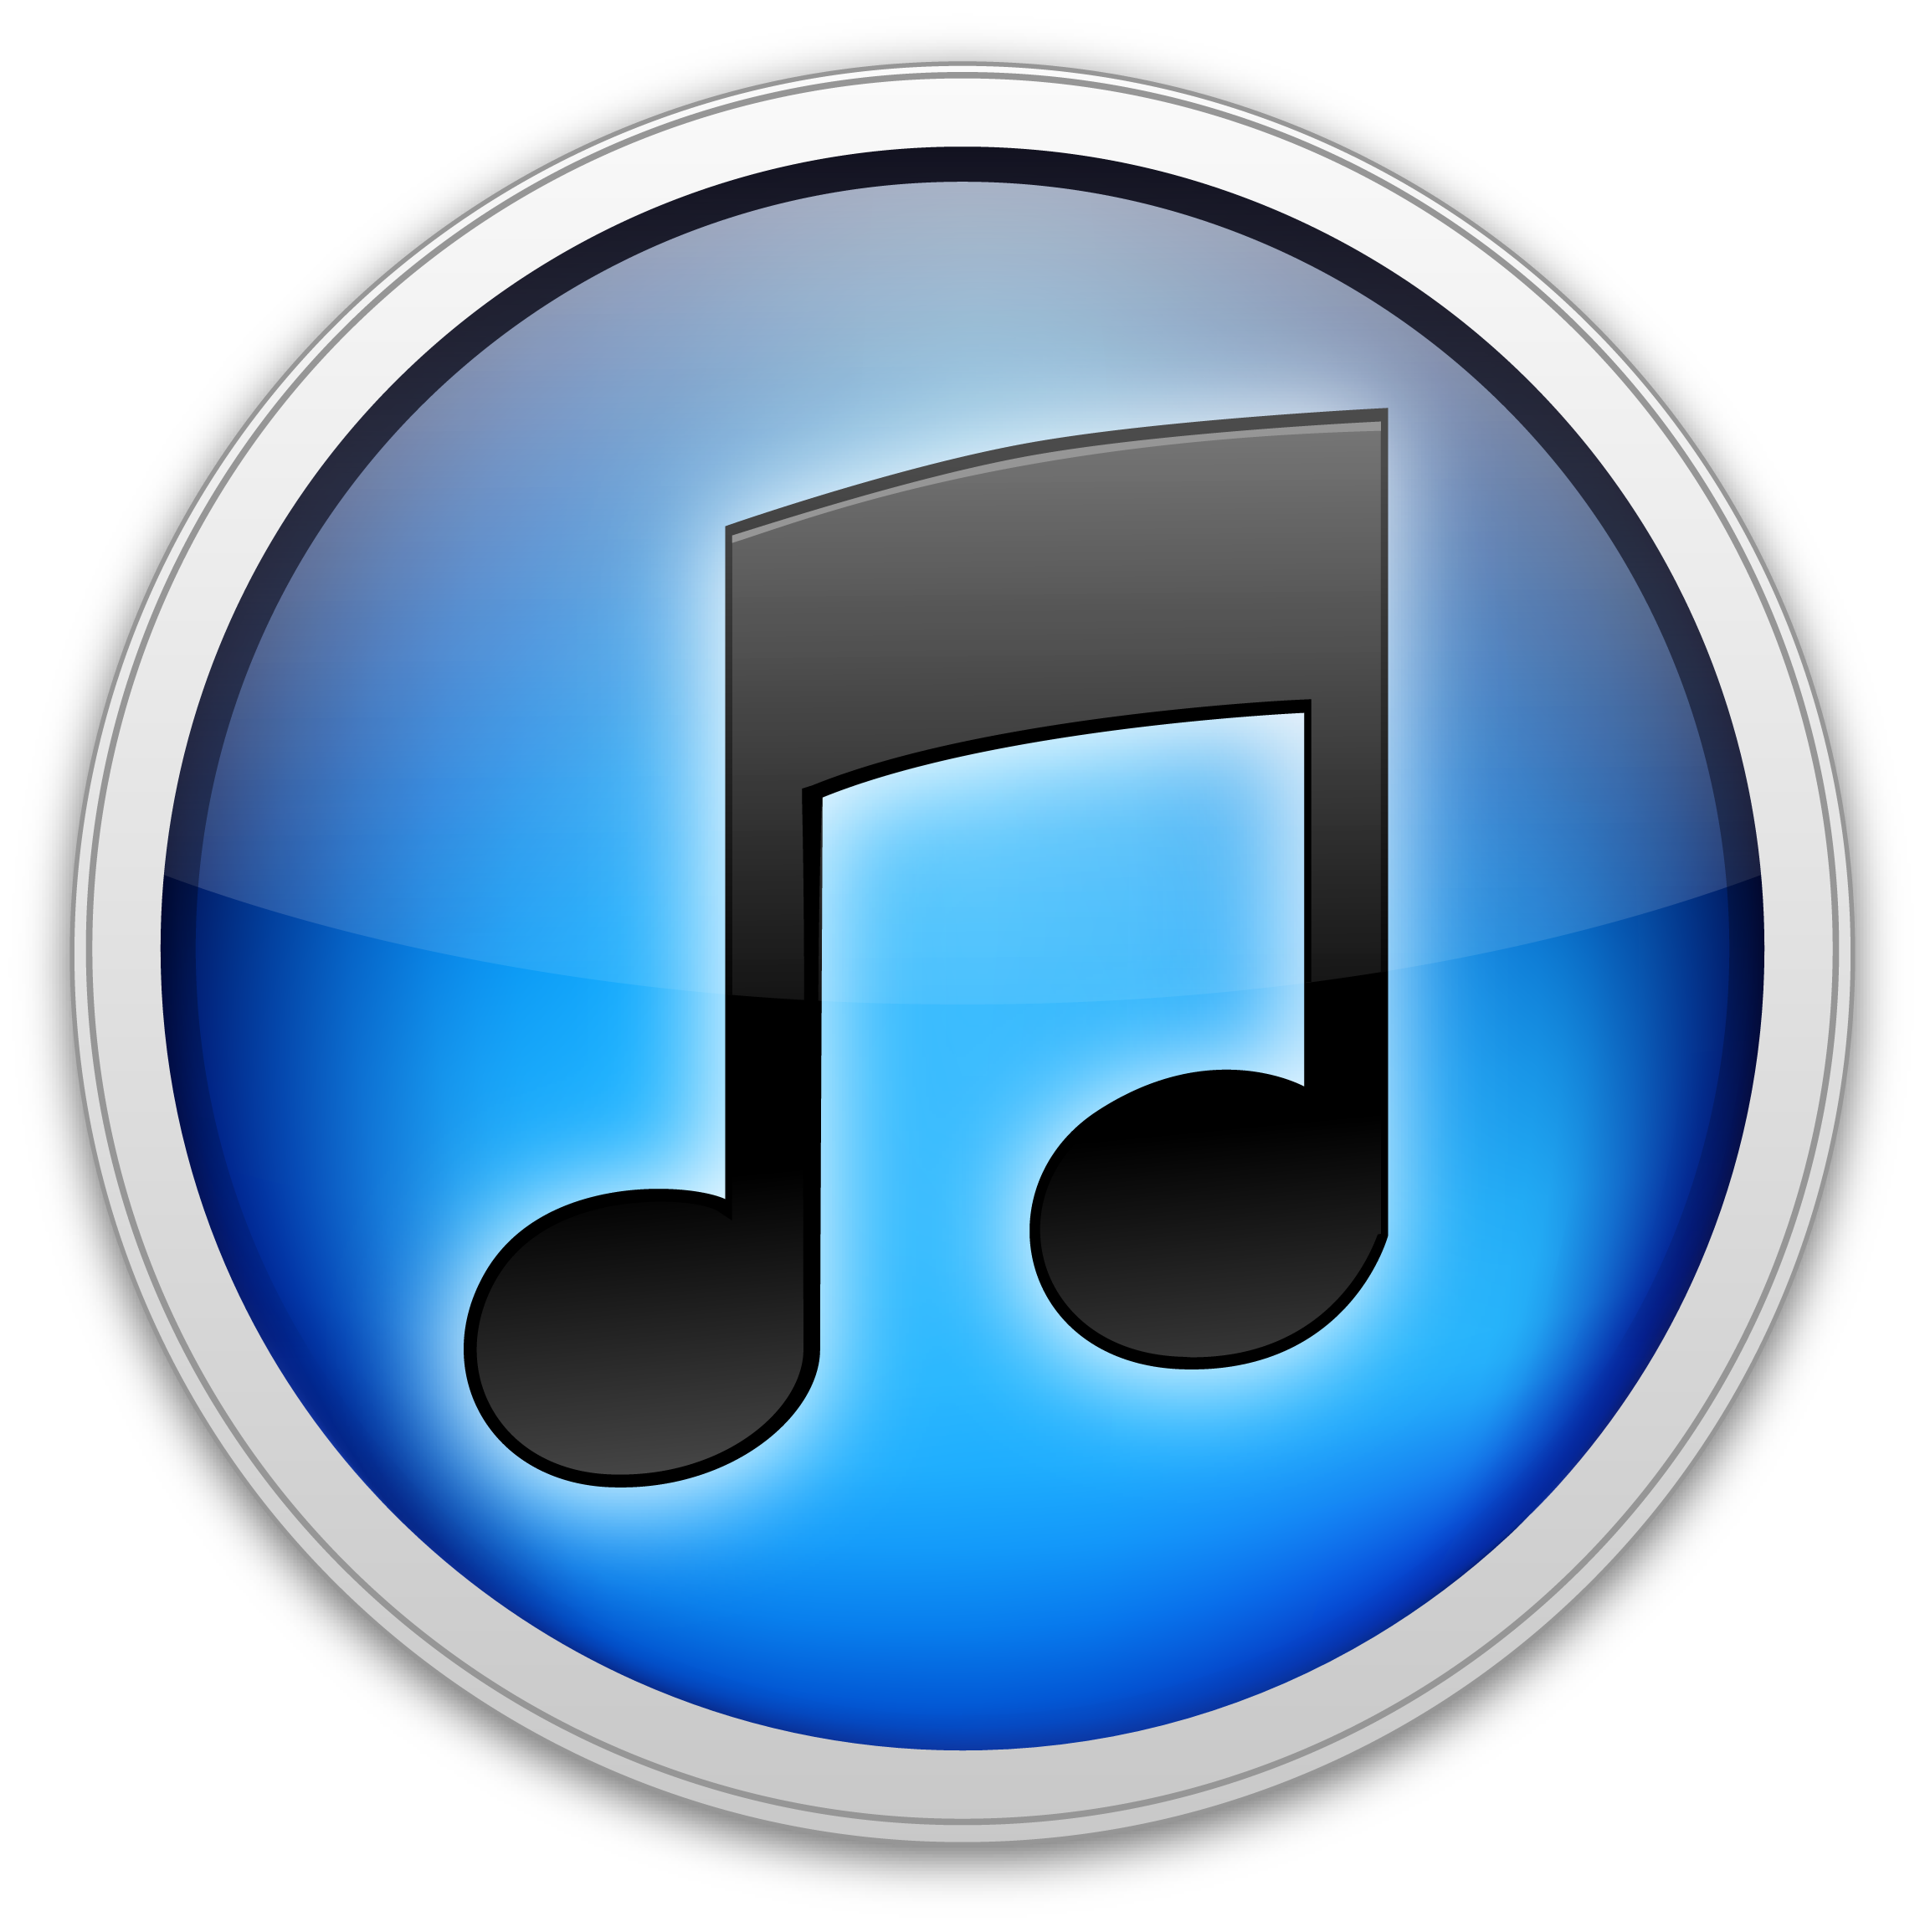 Apple's iTunes Turns 10 Years Old, Dominates Music - hypebot